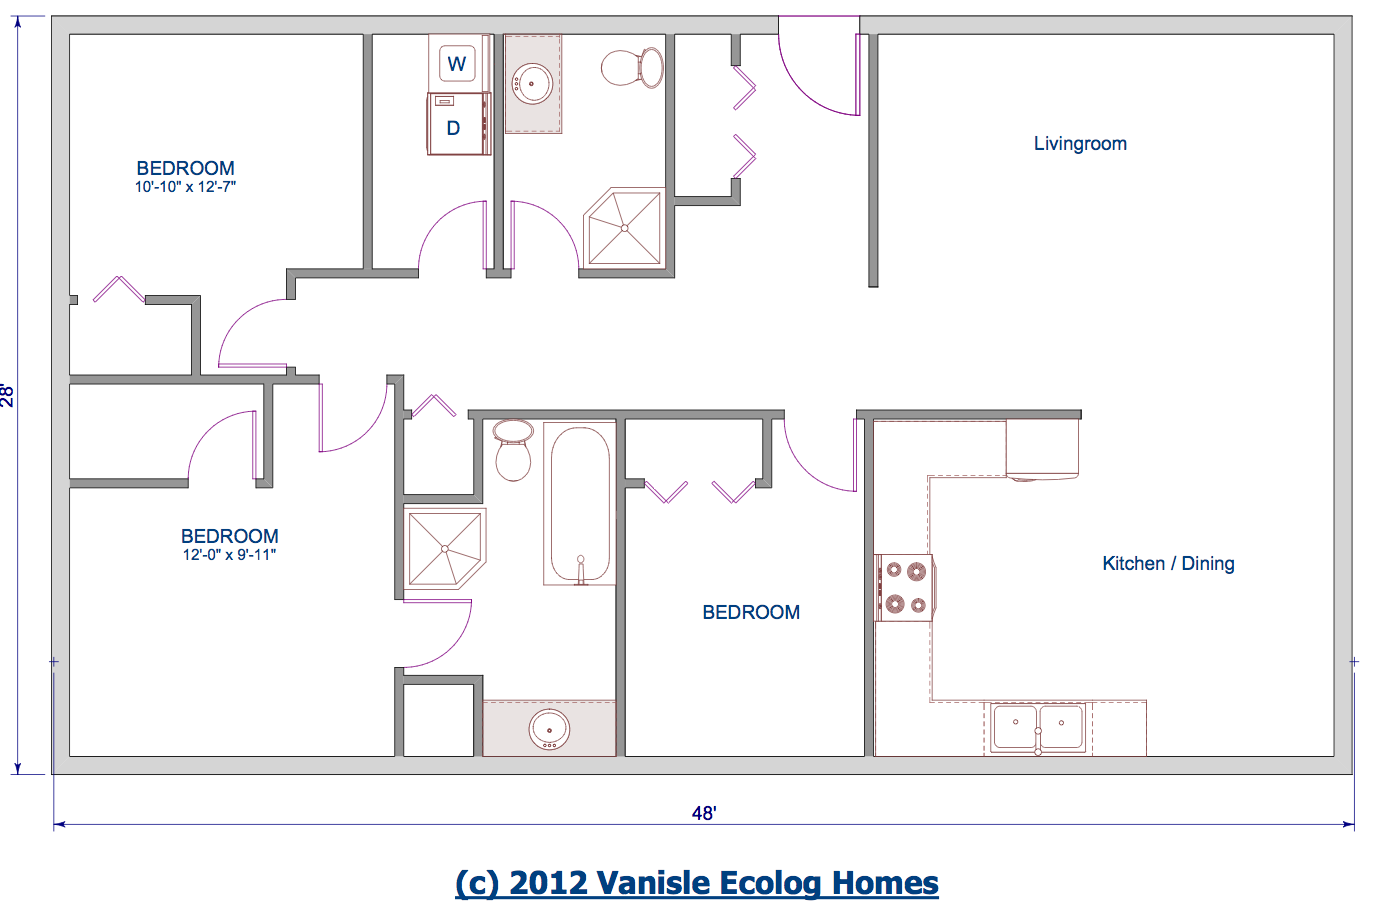 One Level Floor Plans 3 bed   Floor Plan 1344 sqft. One Level Floor Plans 3 bed   Floor Plan 1344 sqft 28 x48    Home